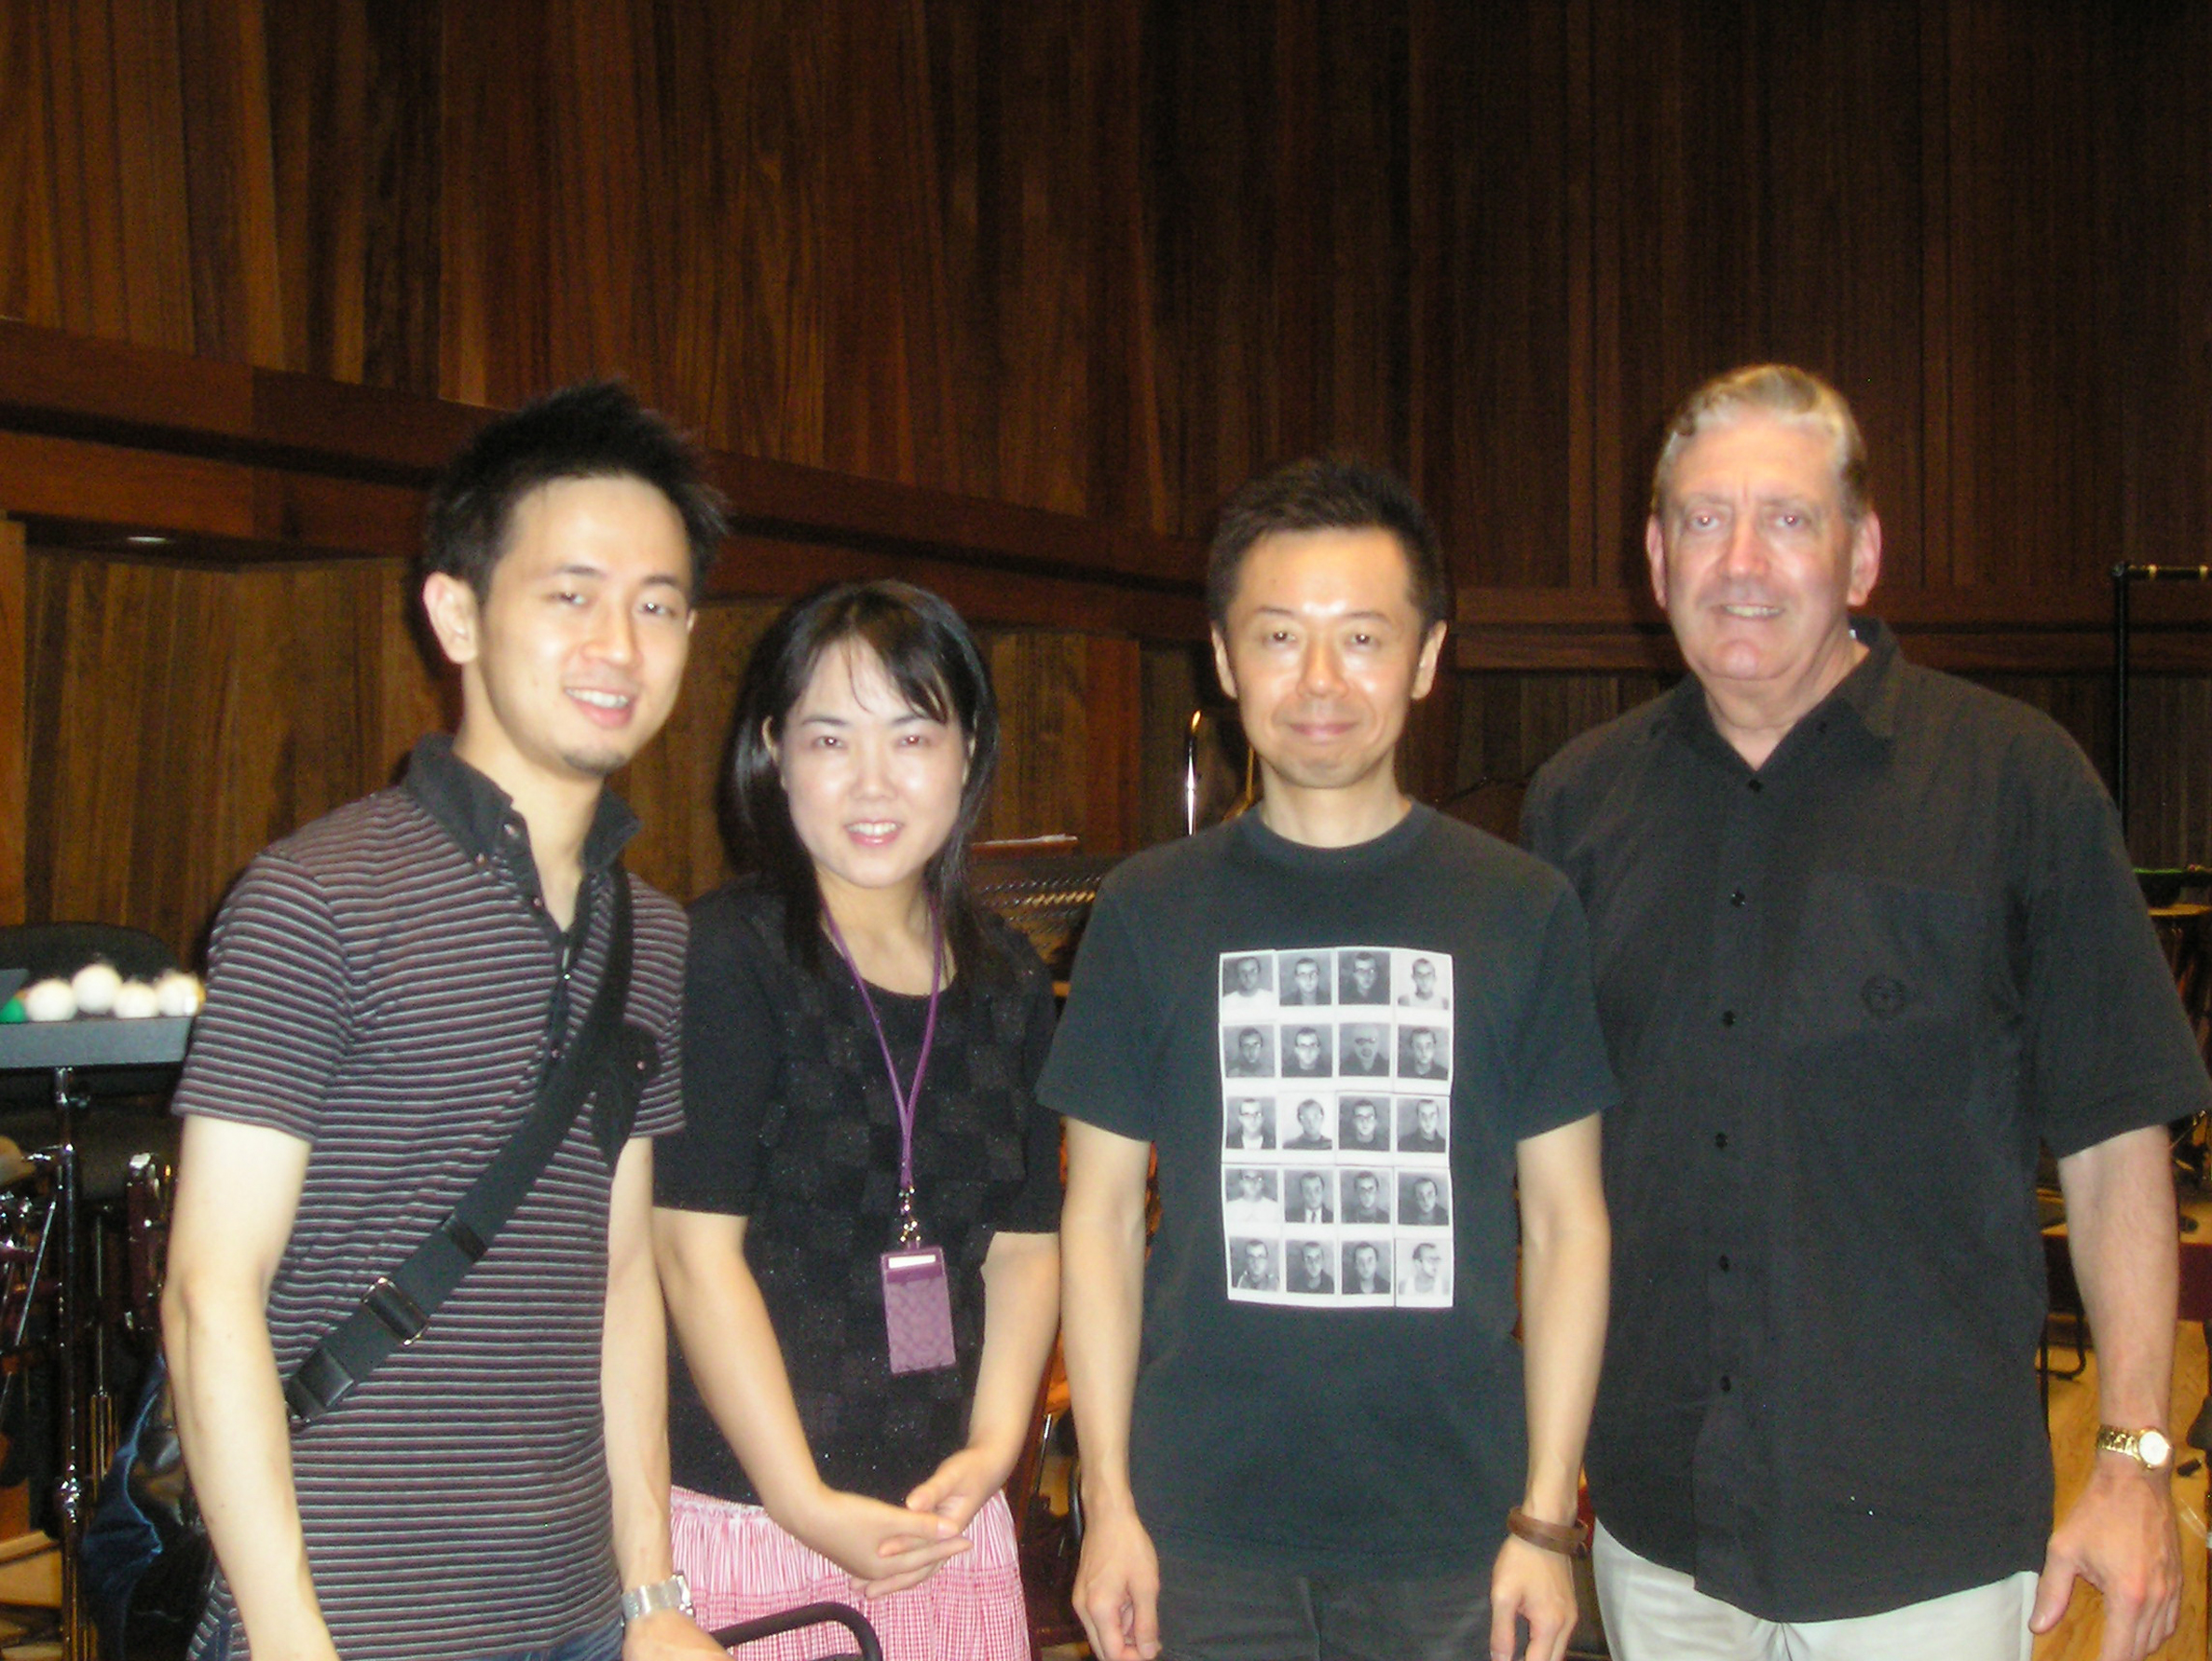 P.A.C. Timpanist Naoki, Percussionists Yoshiko and Atsushi, with Bill